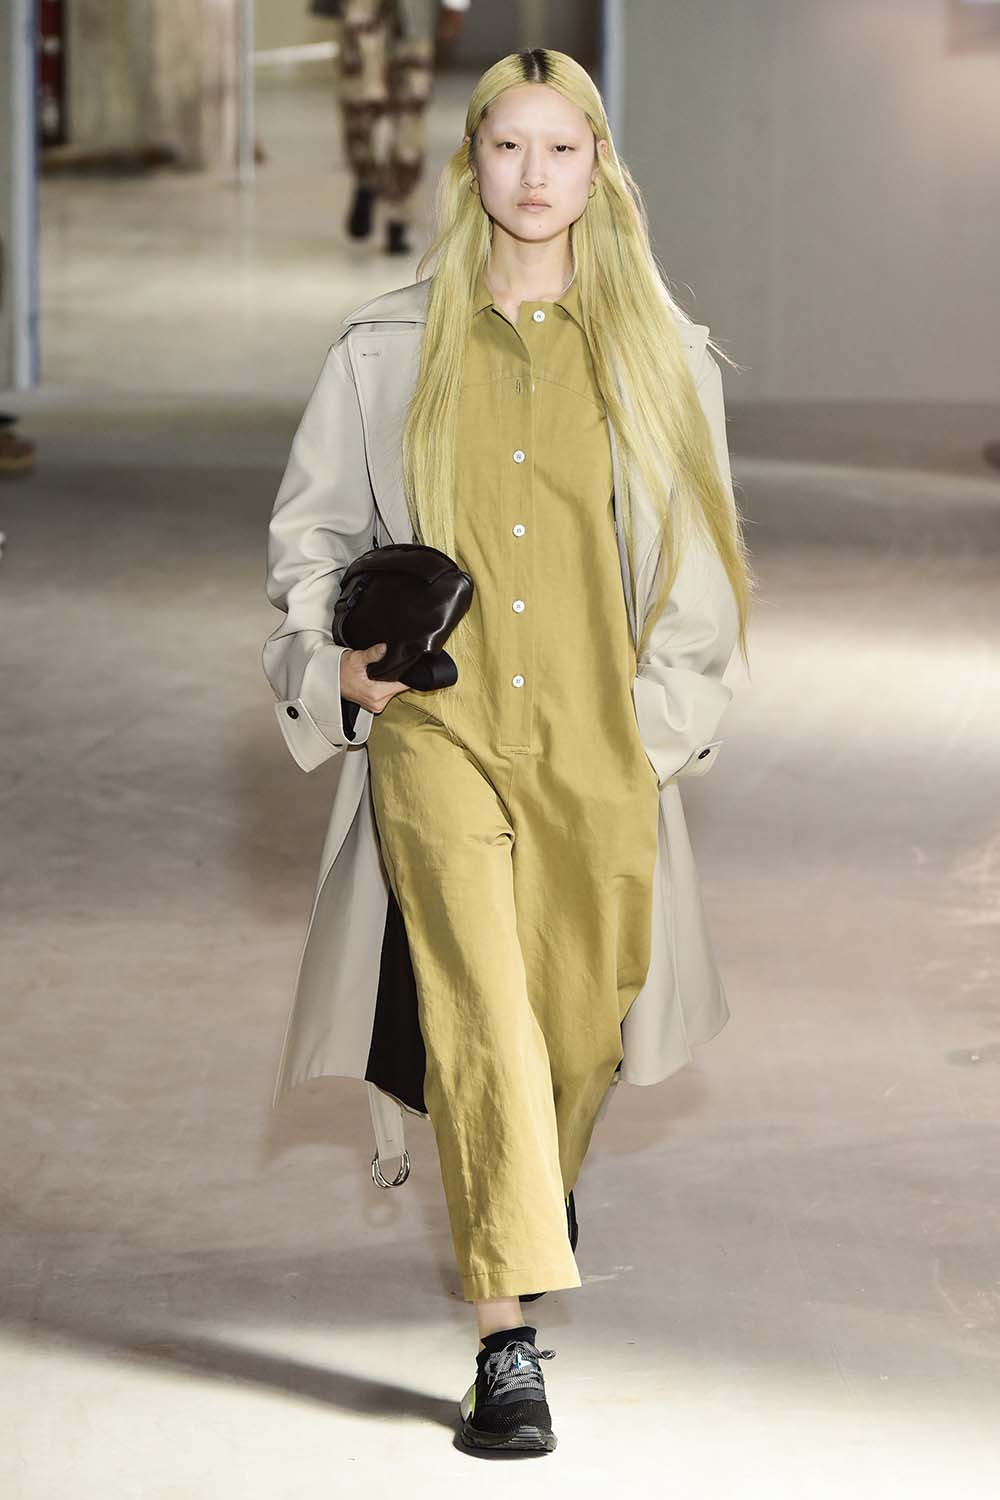 Etudes Paris Fashion Week Men's SS19 - Sagaboi - Look 11